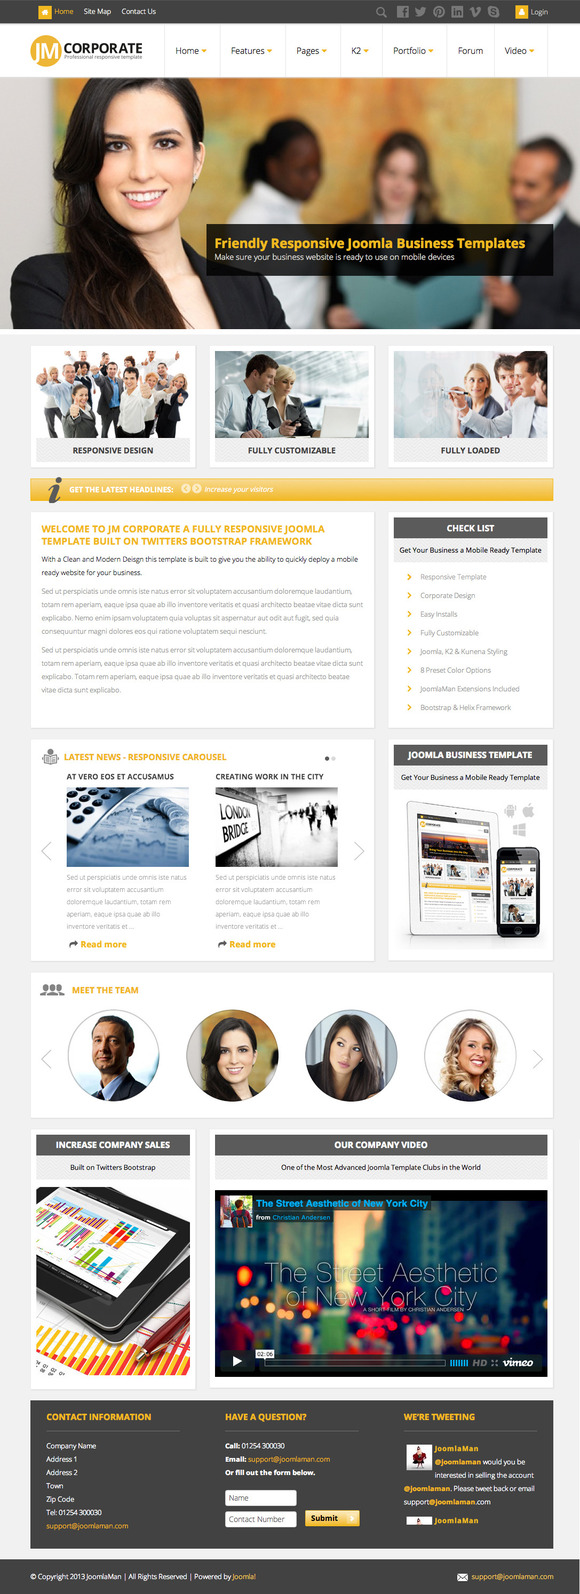 JM Corporate Responsive Joomla